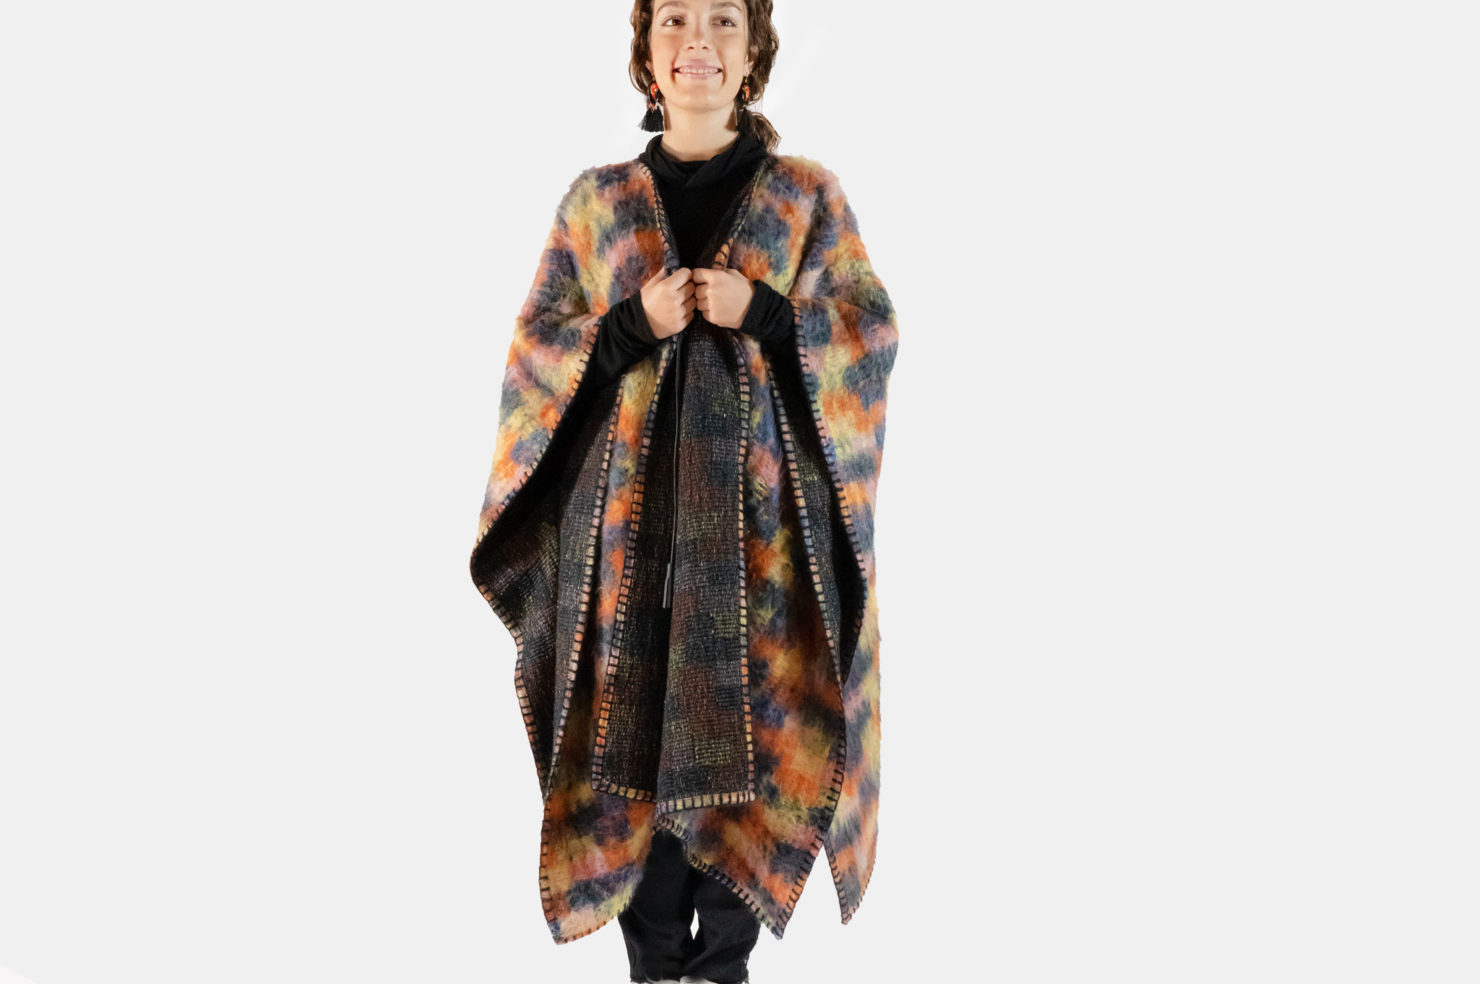 SCOTTISH PLAID MAXI PONCHO WITH EMBR - VANDA CATUCCI FOR M11